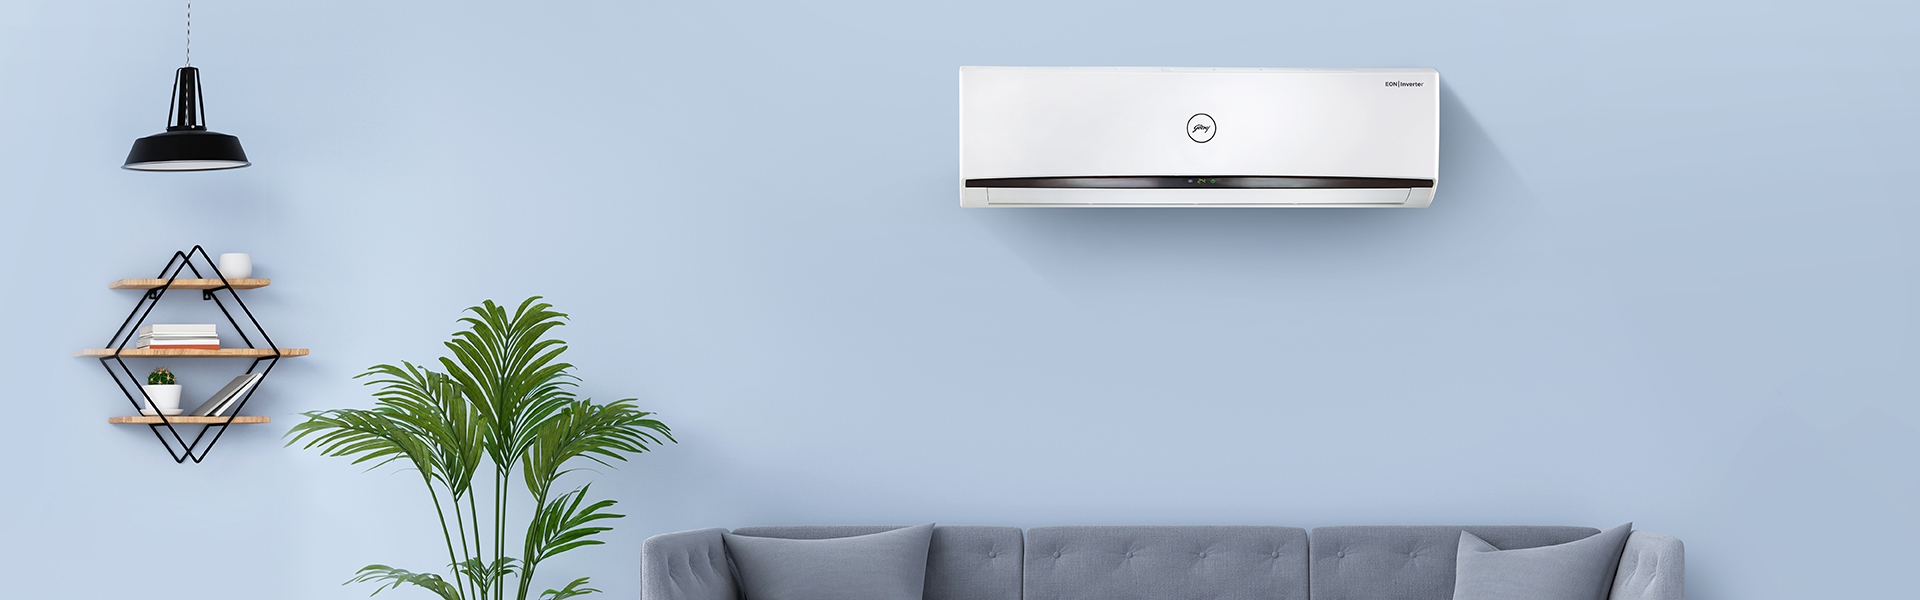 If You Don't Air Conditioner Now You May Hate Your Self Later